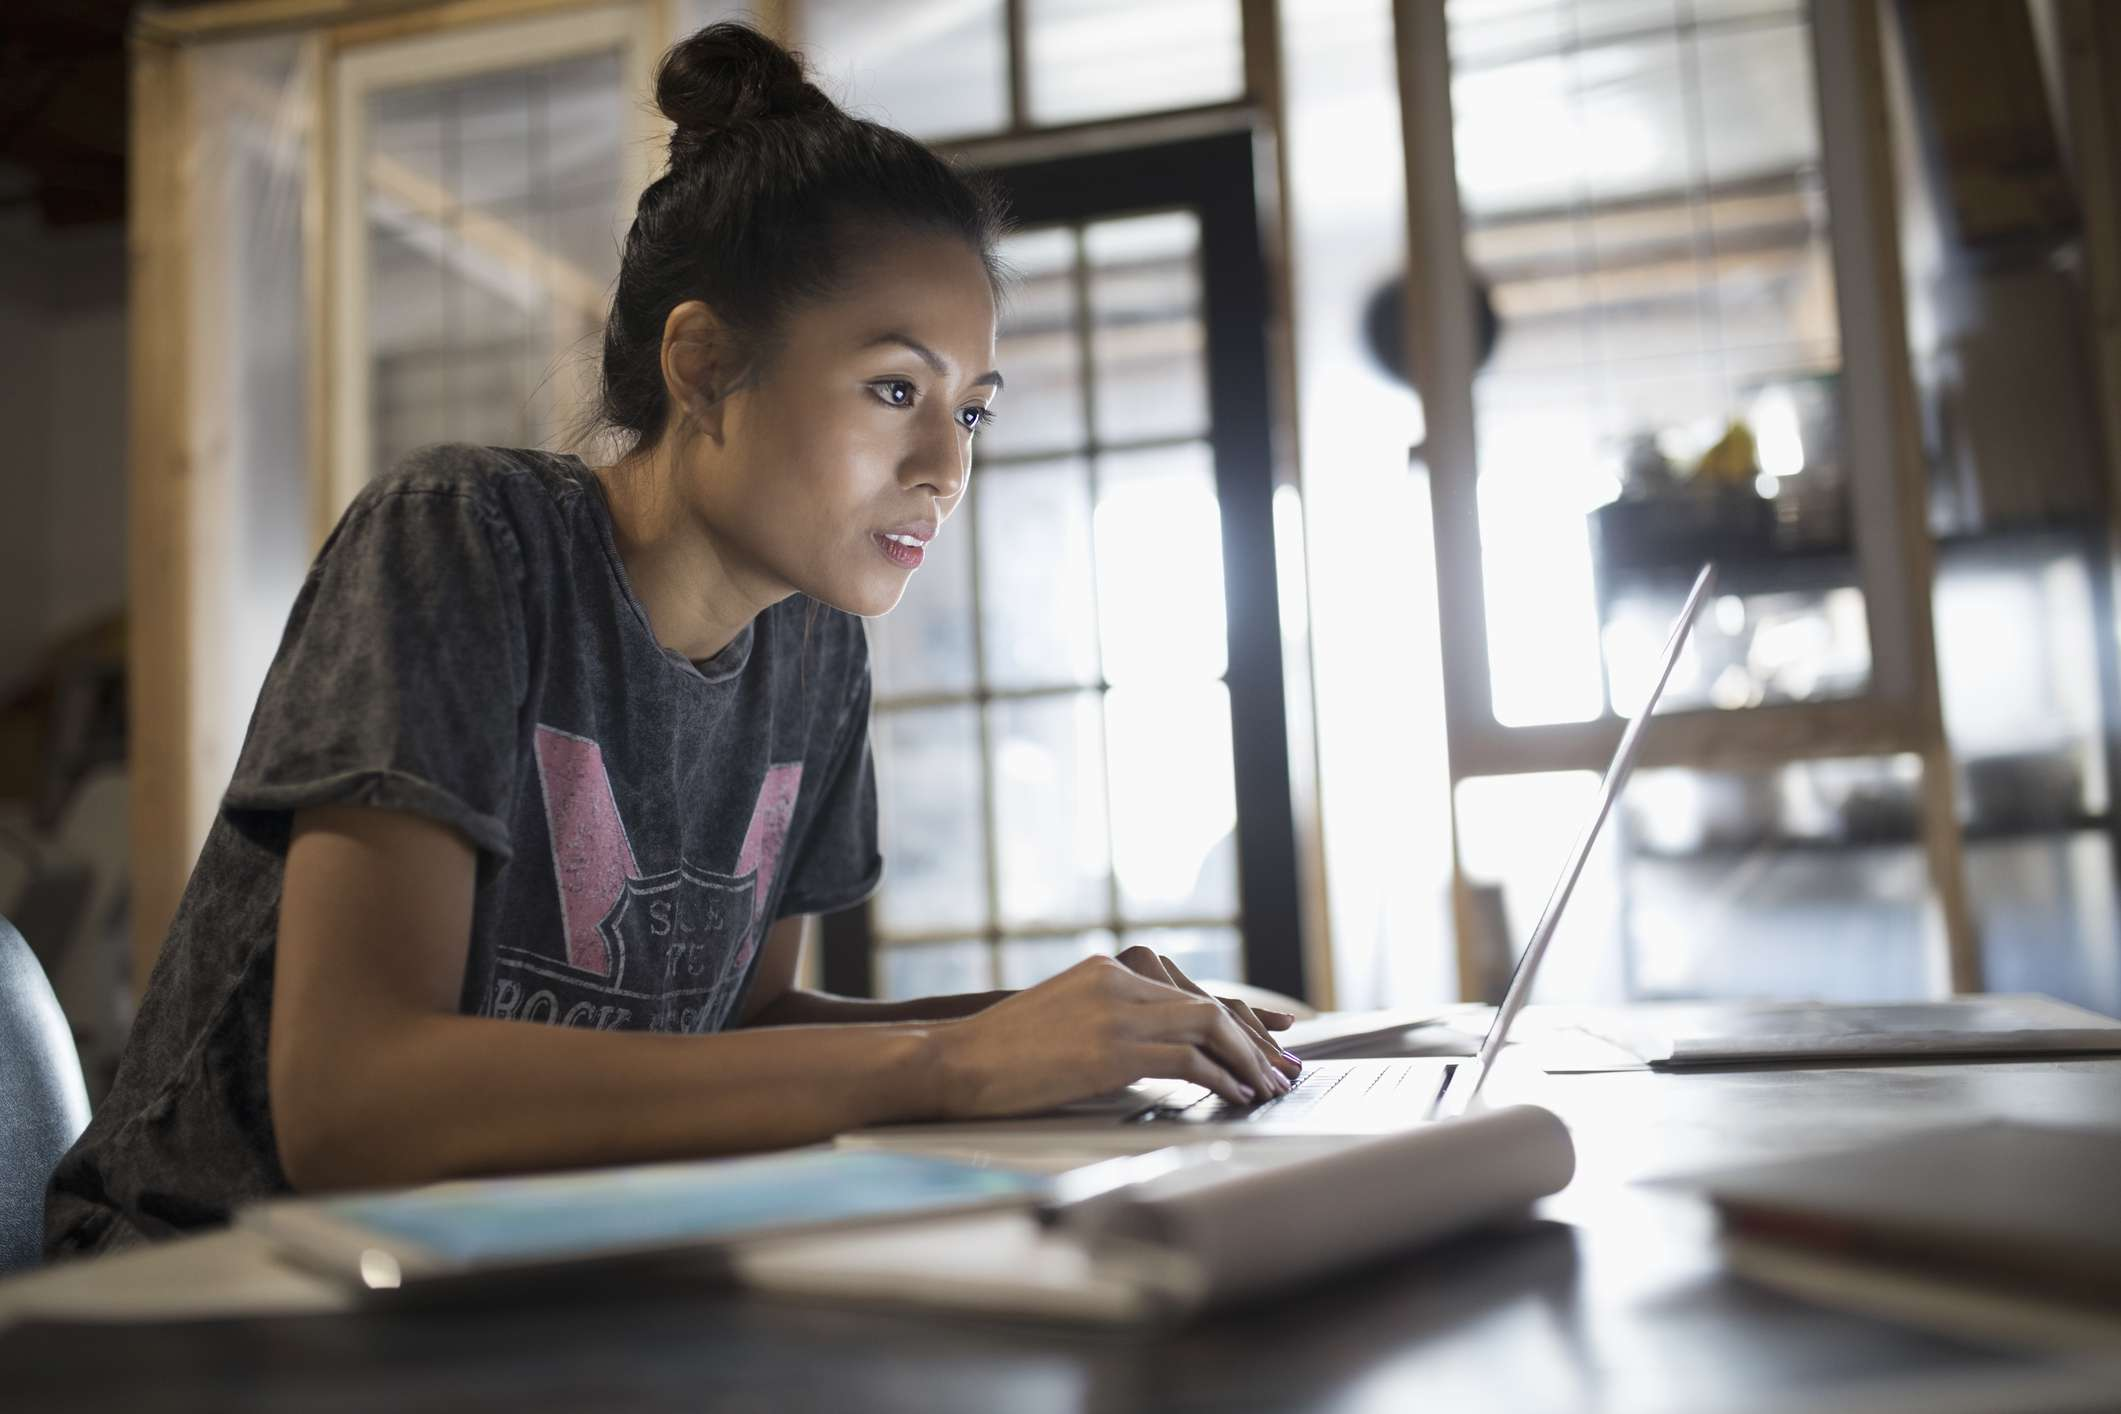 Focused young woman working at laptop in office